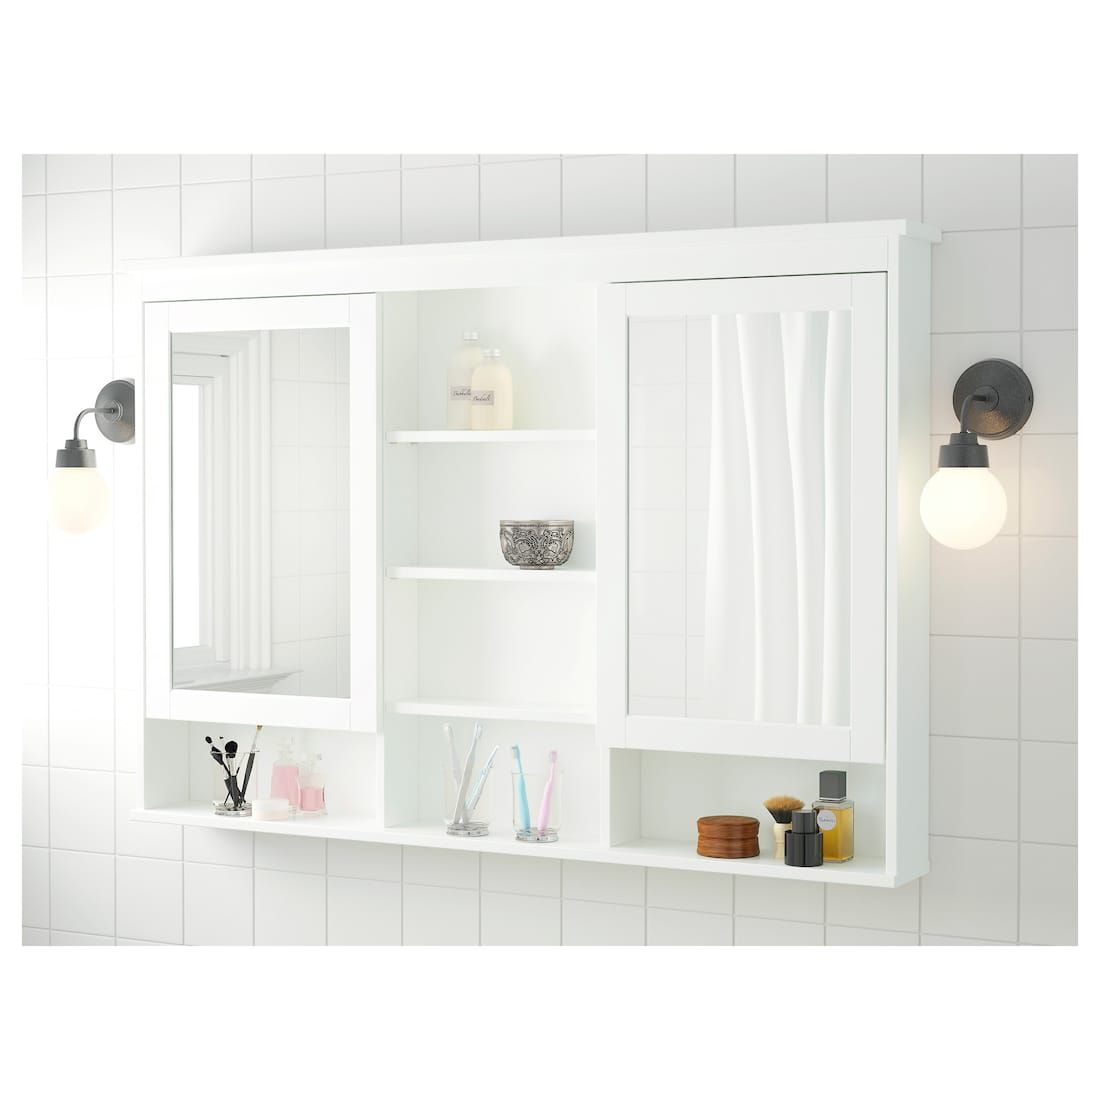 Hemnes Mirror Cabinet With 2 Doors White 55 1 8x38 5 8 Ikea In 2020 Ikea Hemnes Mirror Mirror Cabinets Bathroom Decor